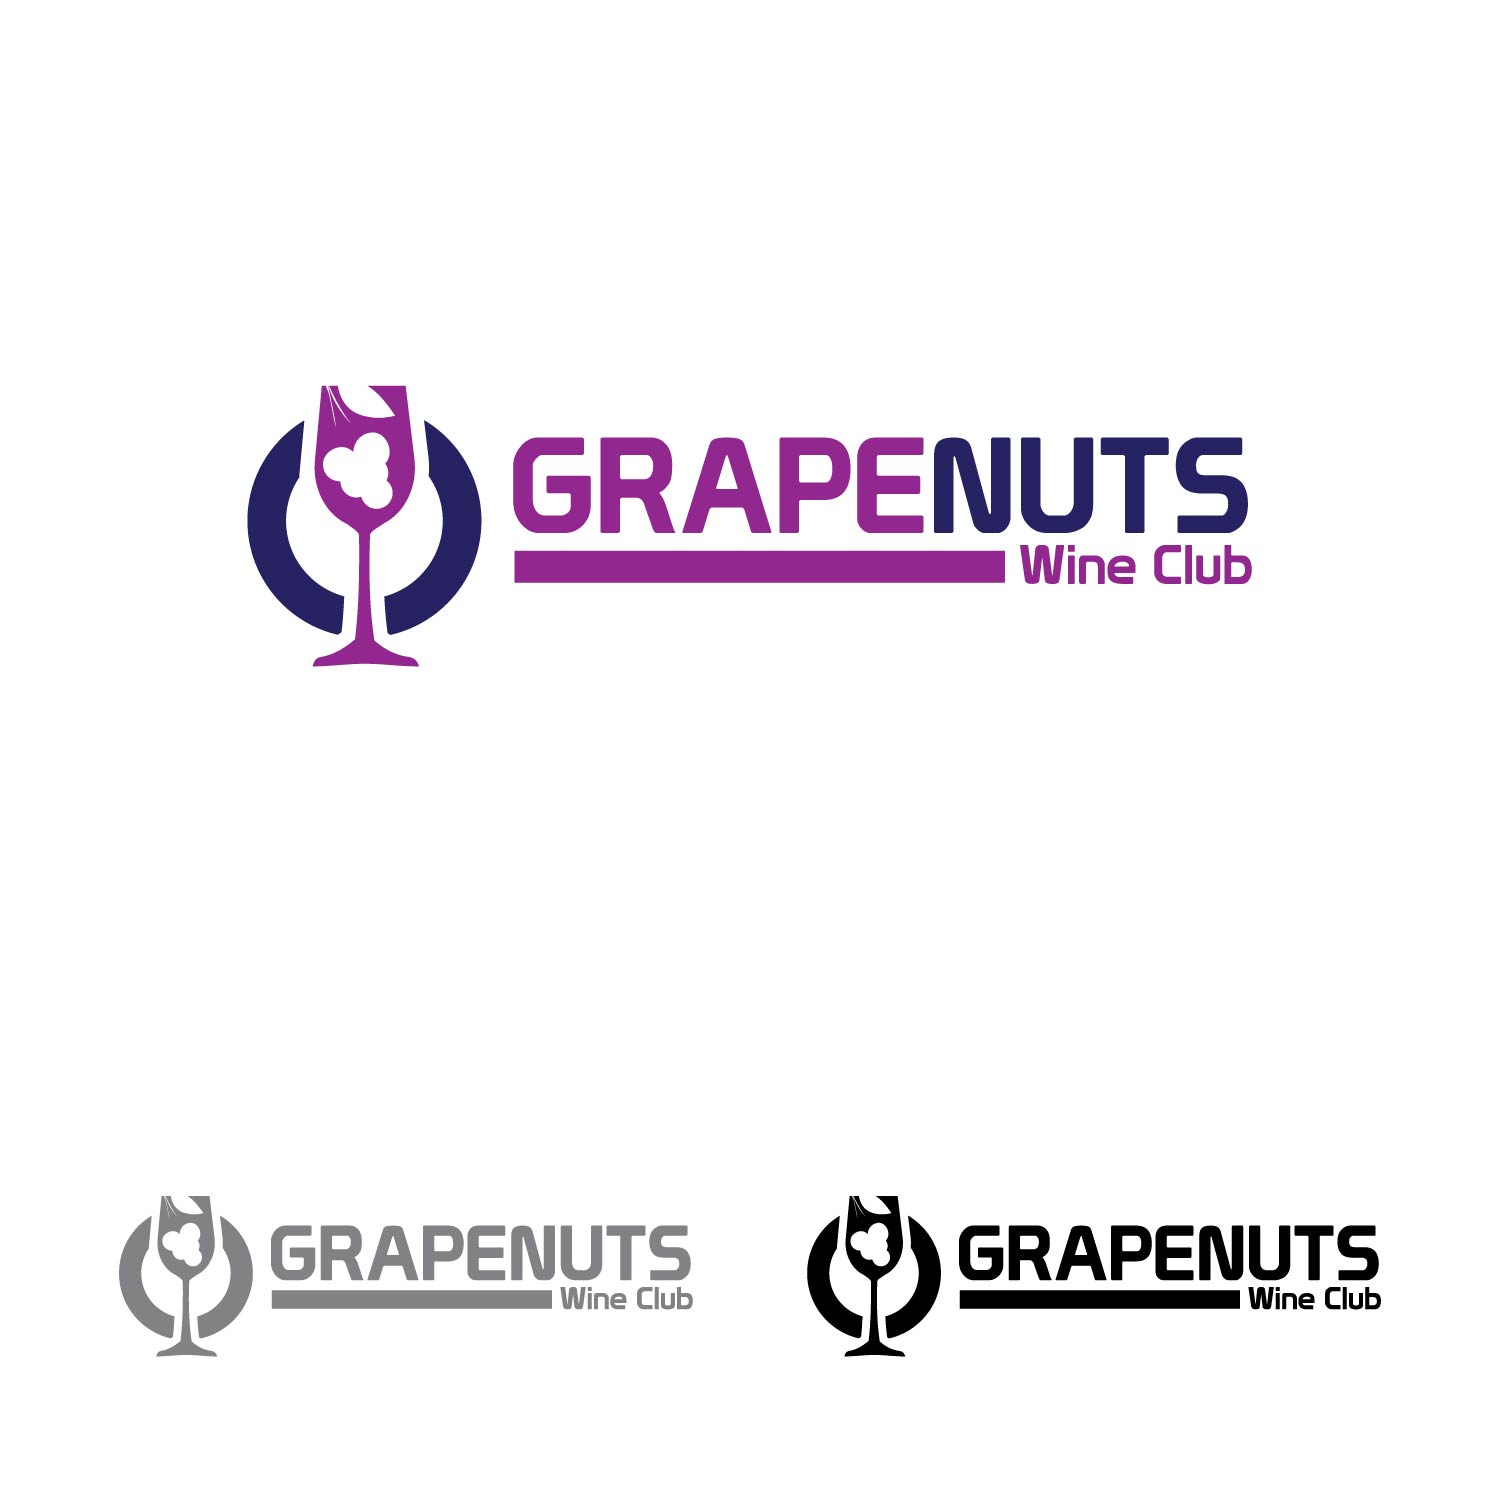 Logo Design by lagalag - Entry No. 41 in the Logo Design Contest Artistic Logo Design for Grape Nuts Wine Club.